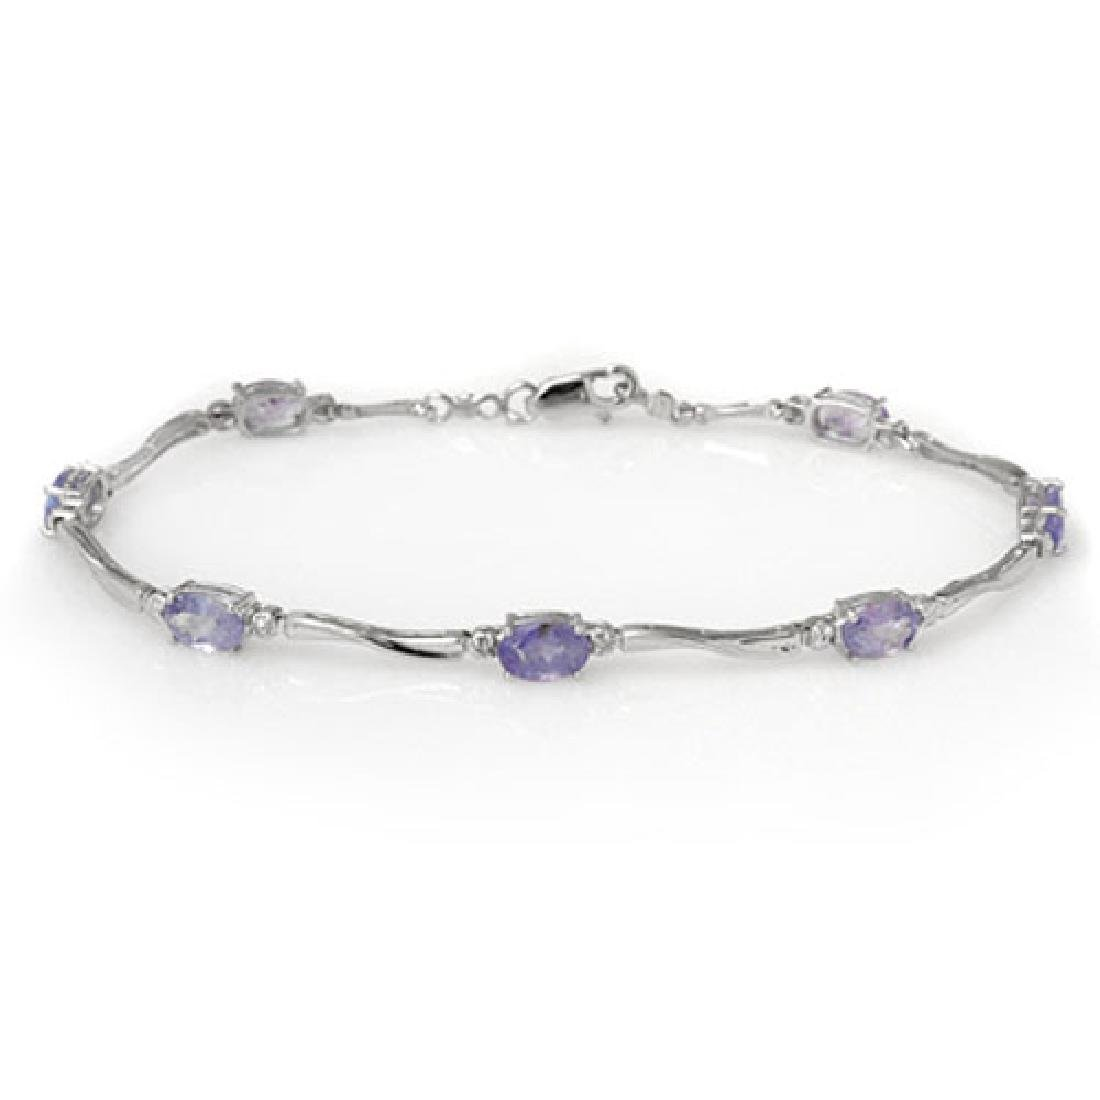 4.02 CTW Tanzanite & Diamond Bracelet 10K White Gold